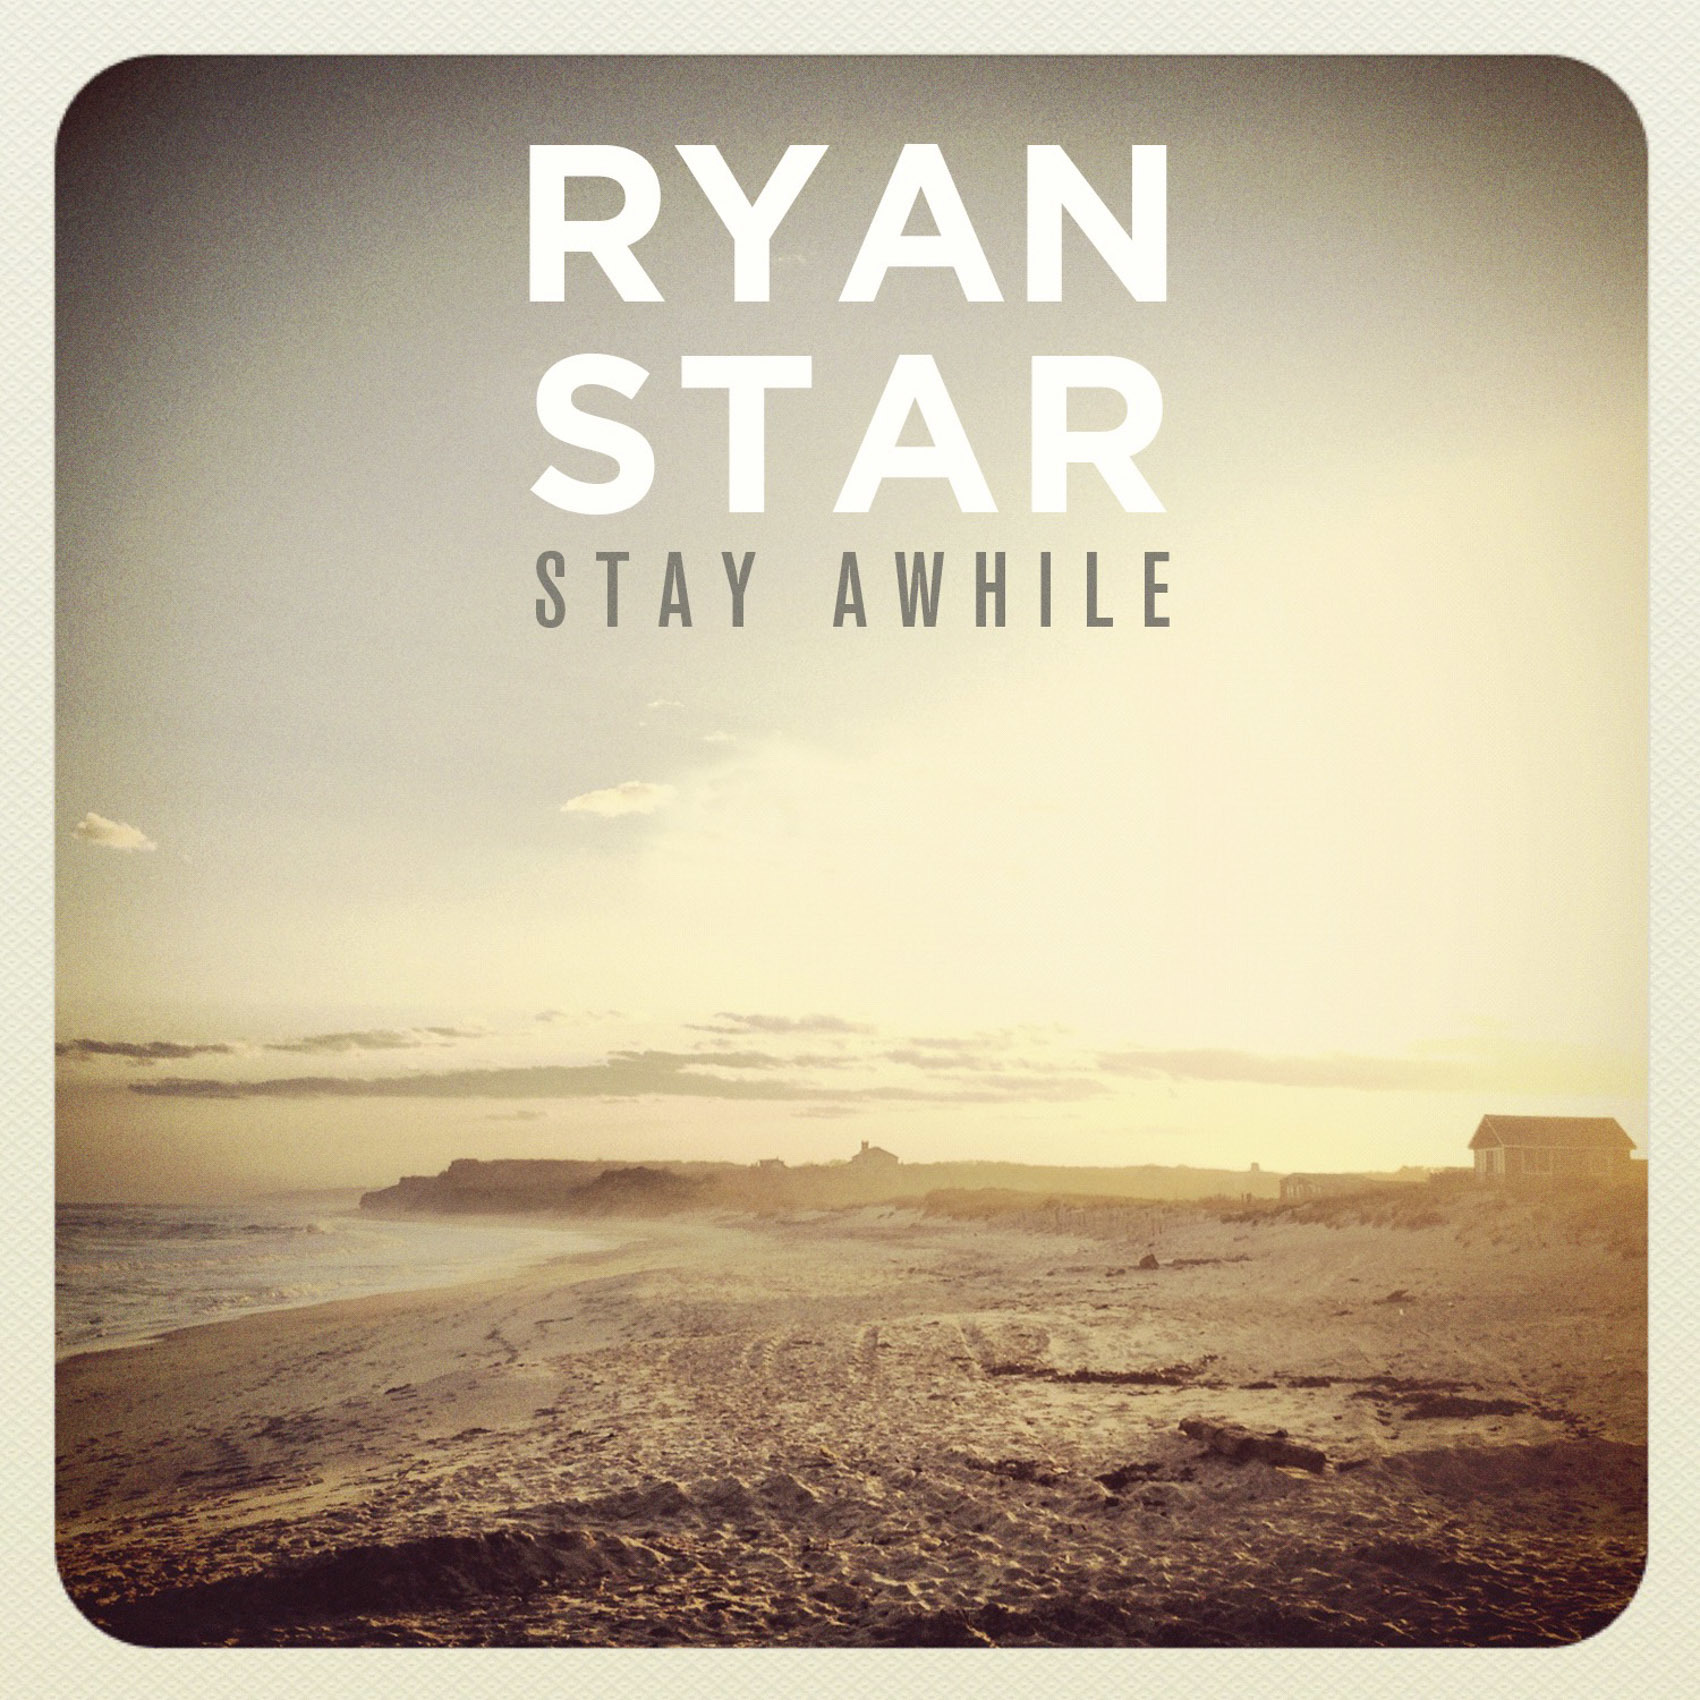 RYAN STAR STAY AWHILE